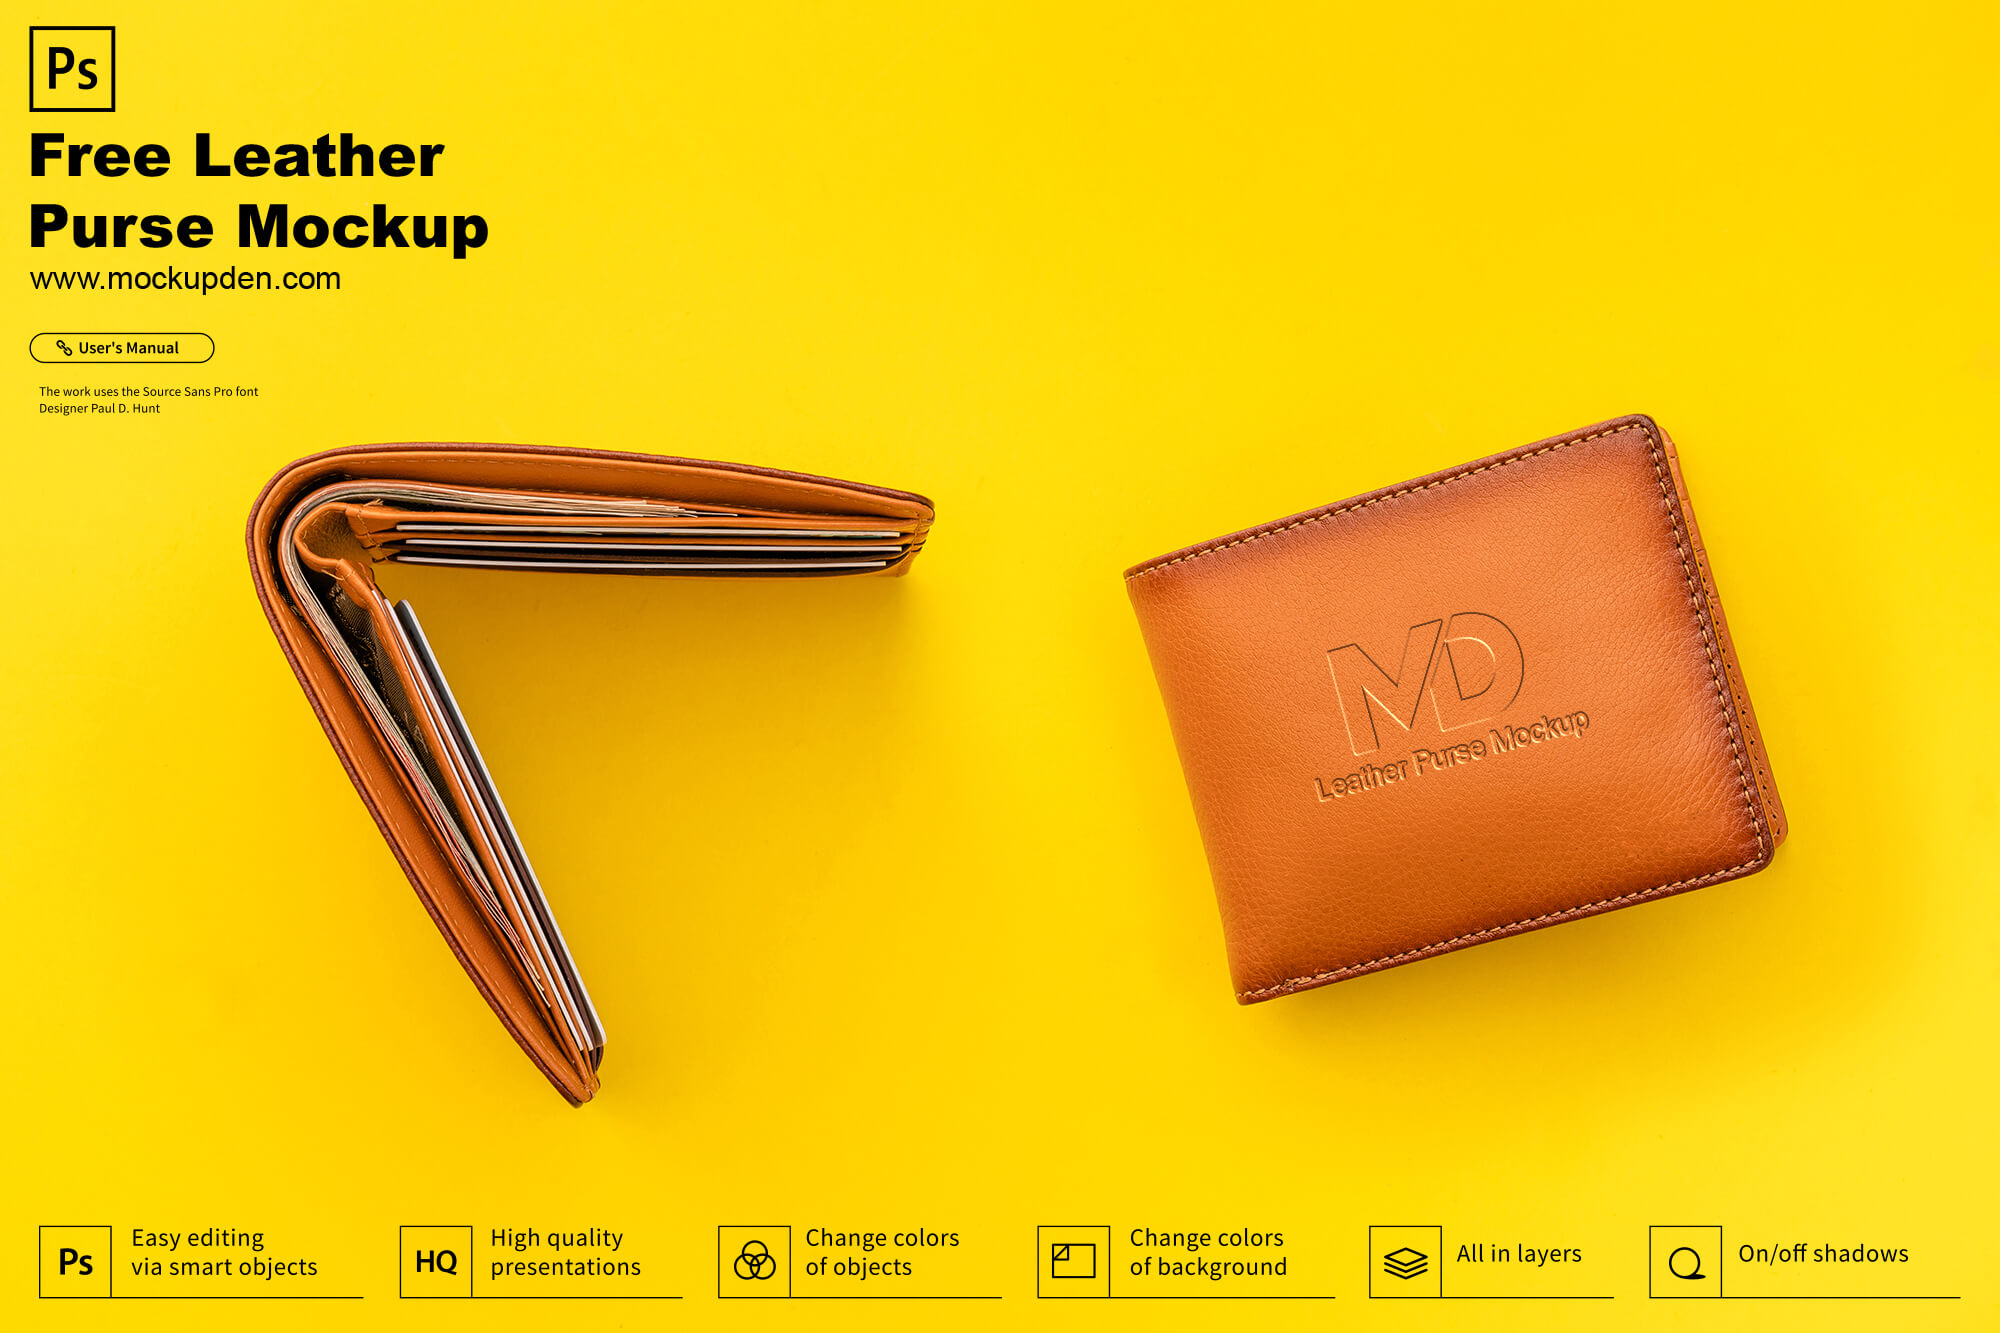 Free Leather Purse Mockup PSD Template